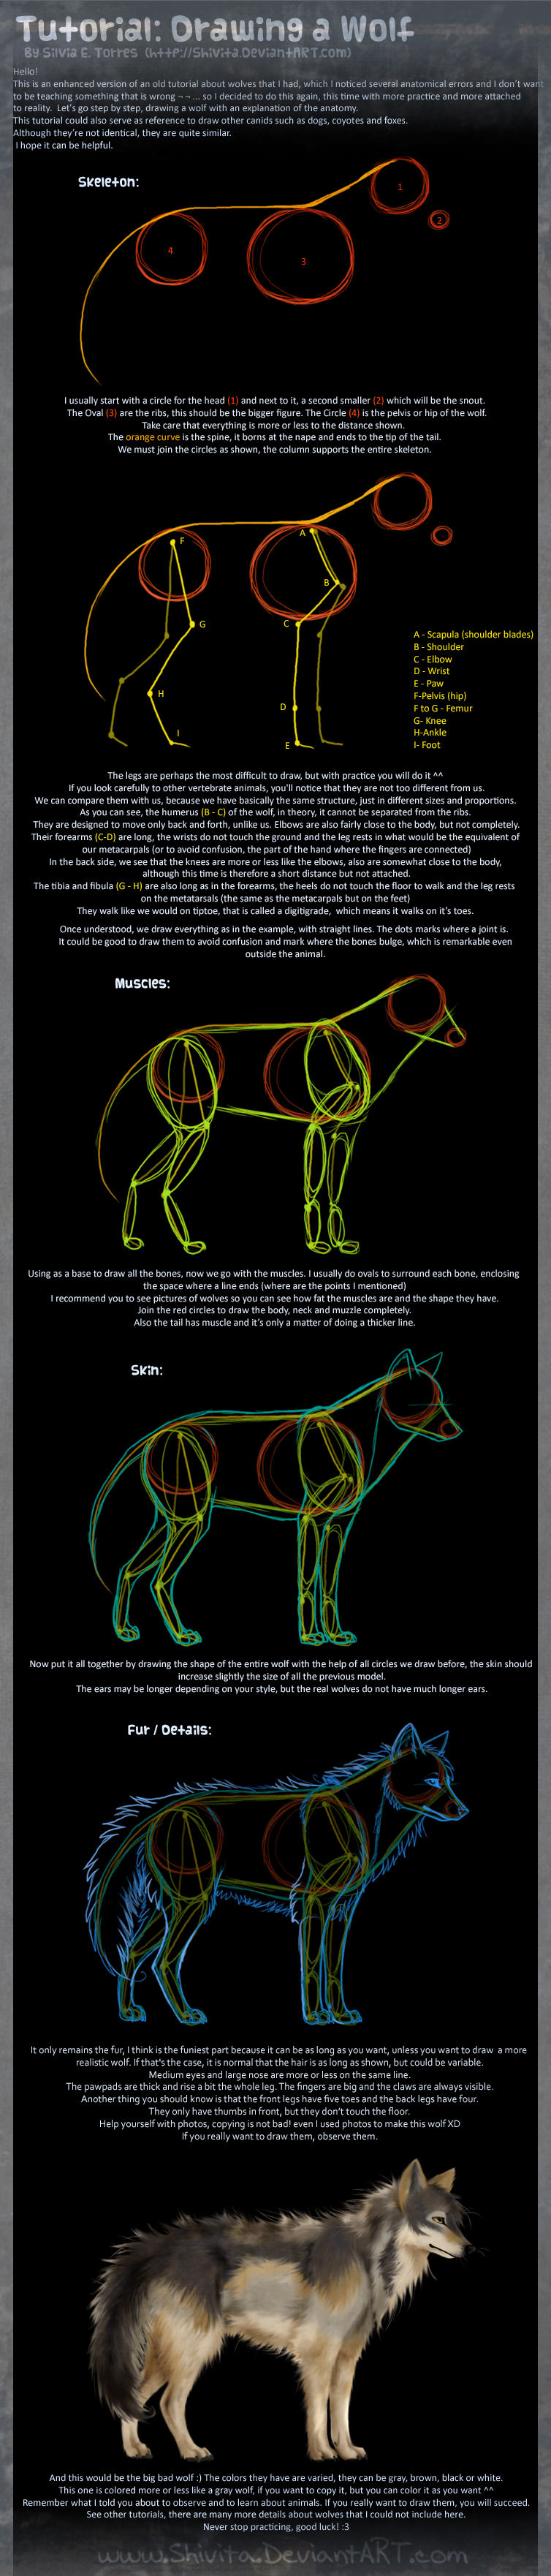 Tutorial: Drawing a Wolf by Shivita